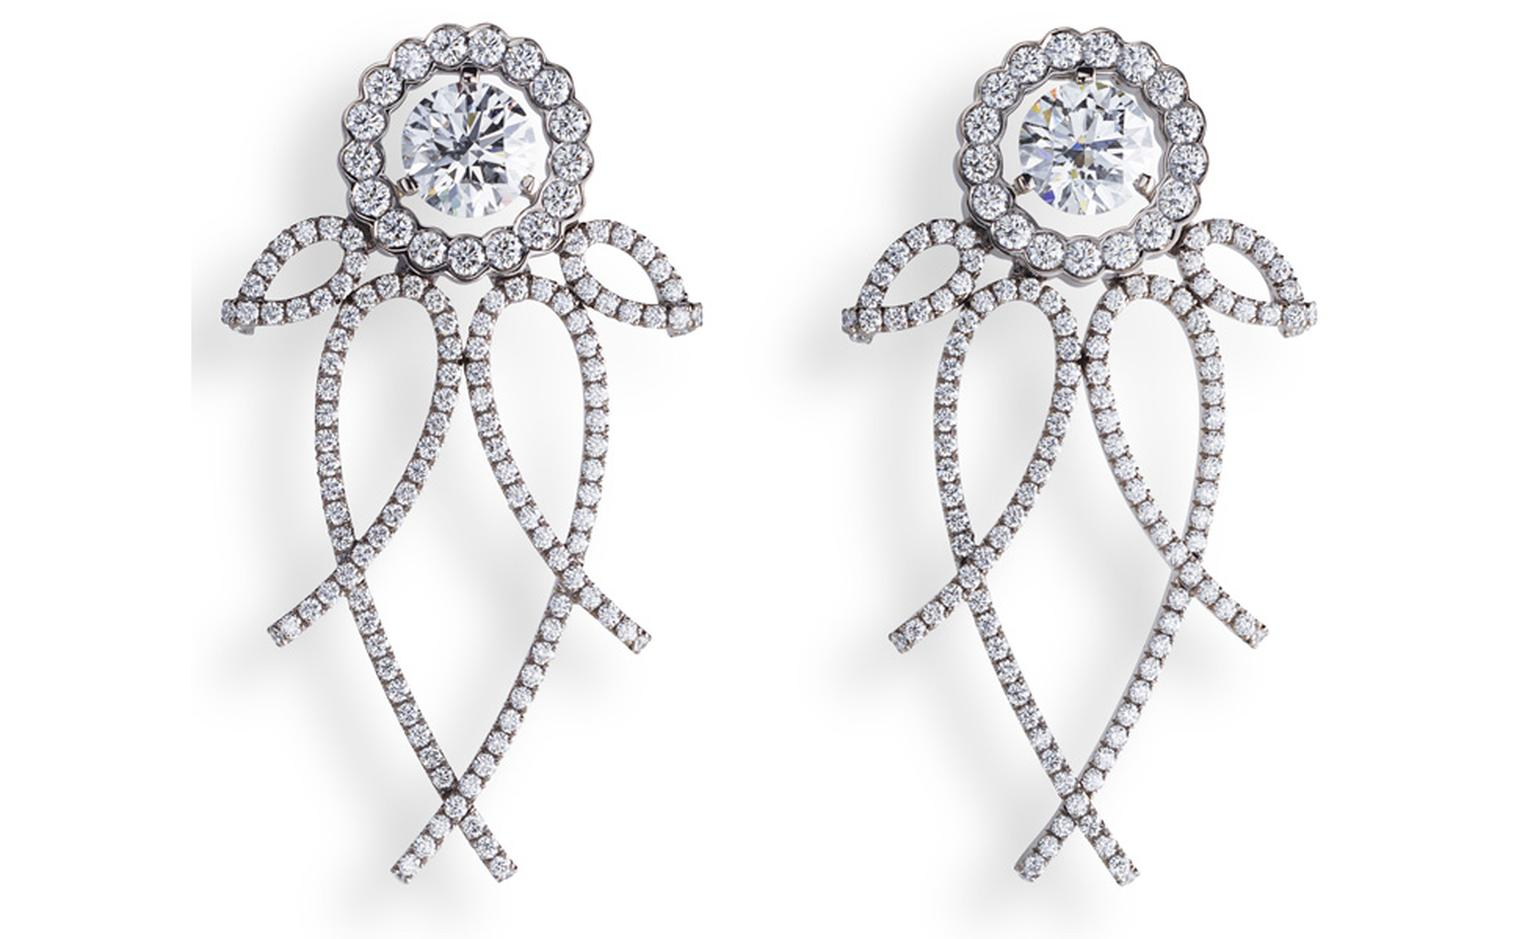 Fabergé Carnet de Bal Trelliage earrings. POA